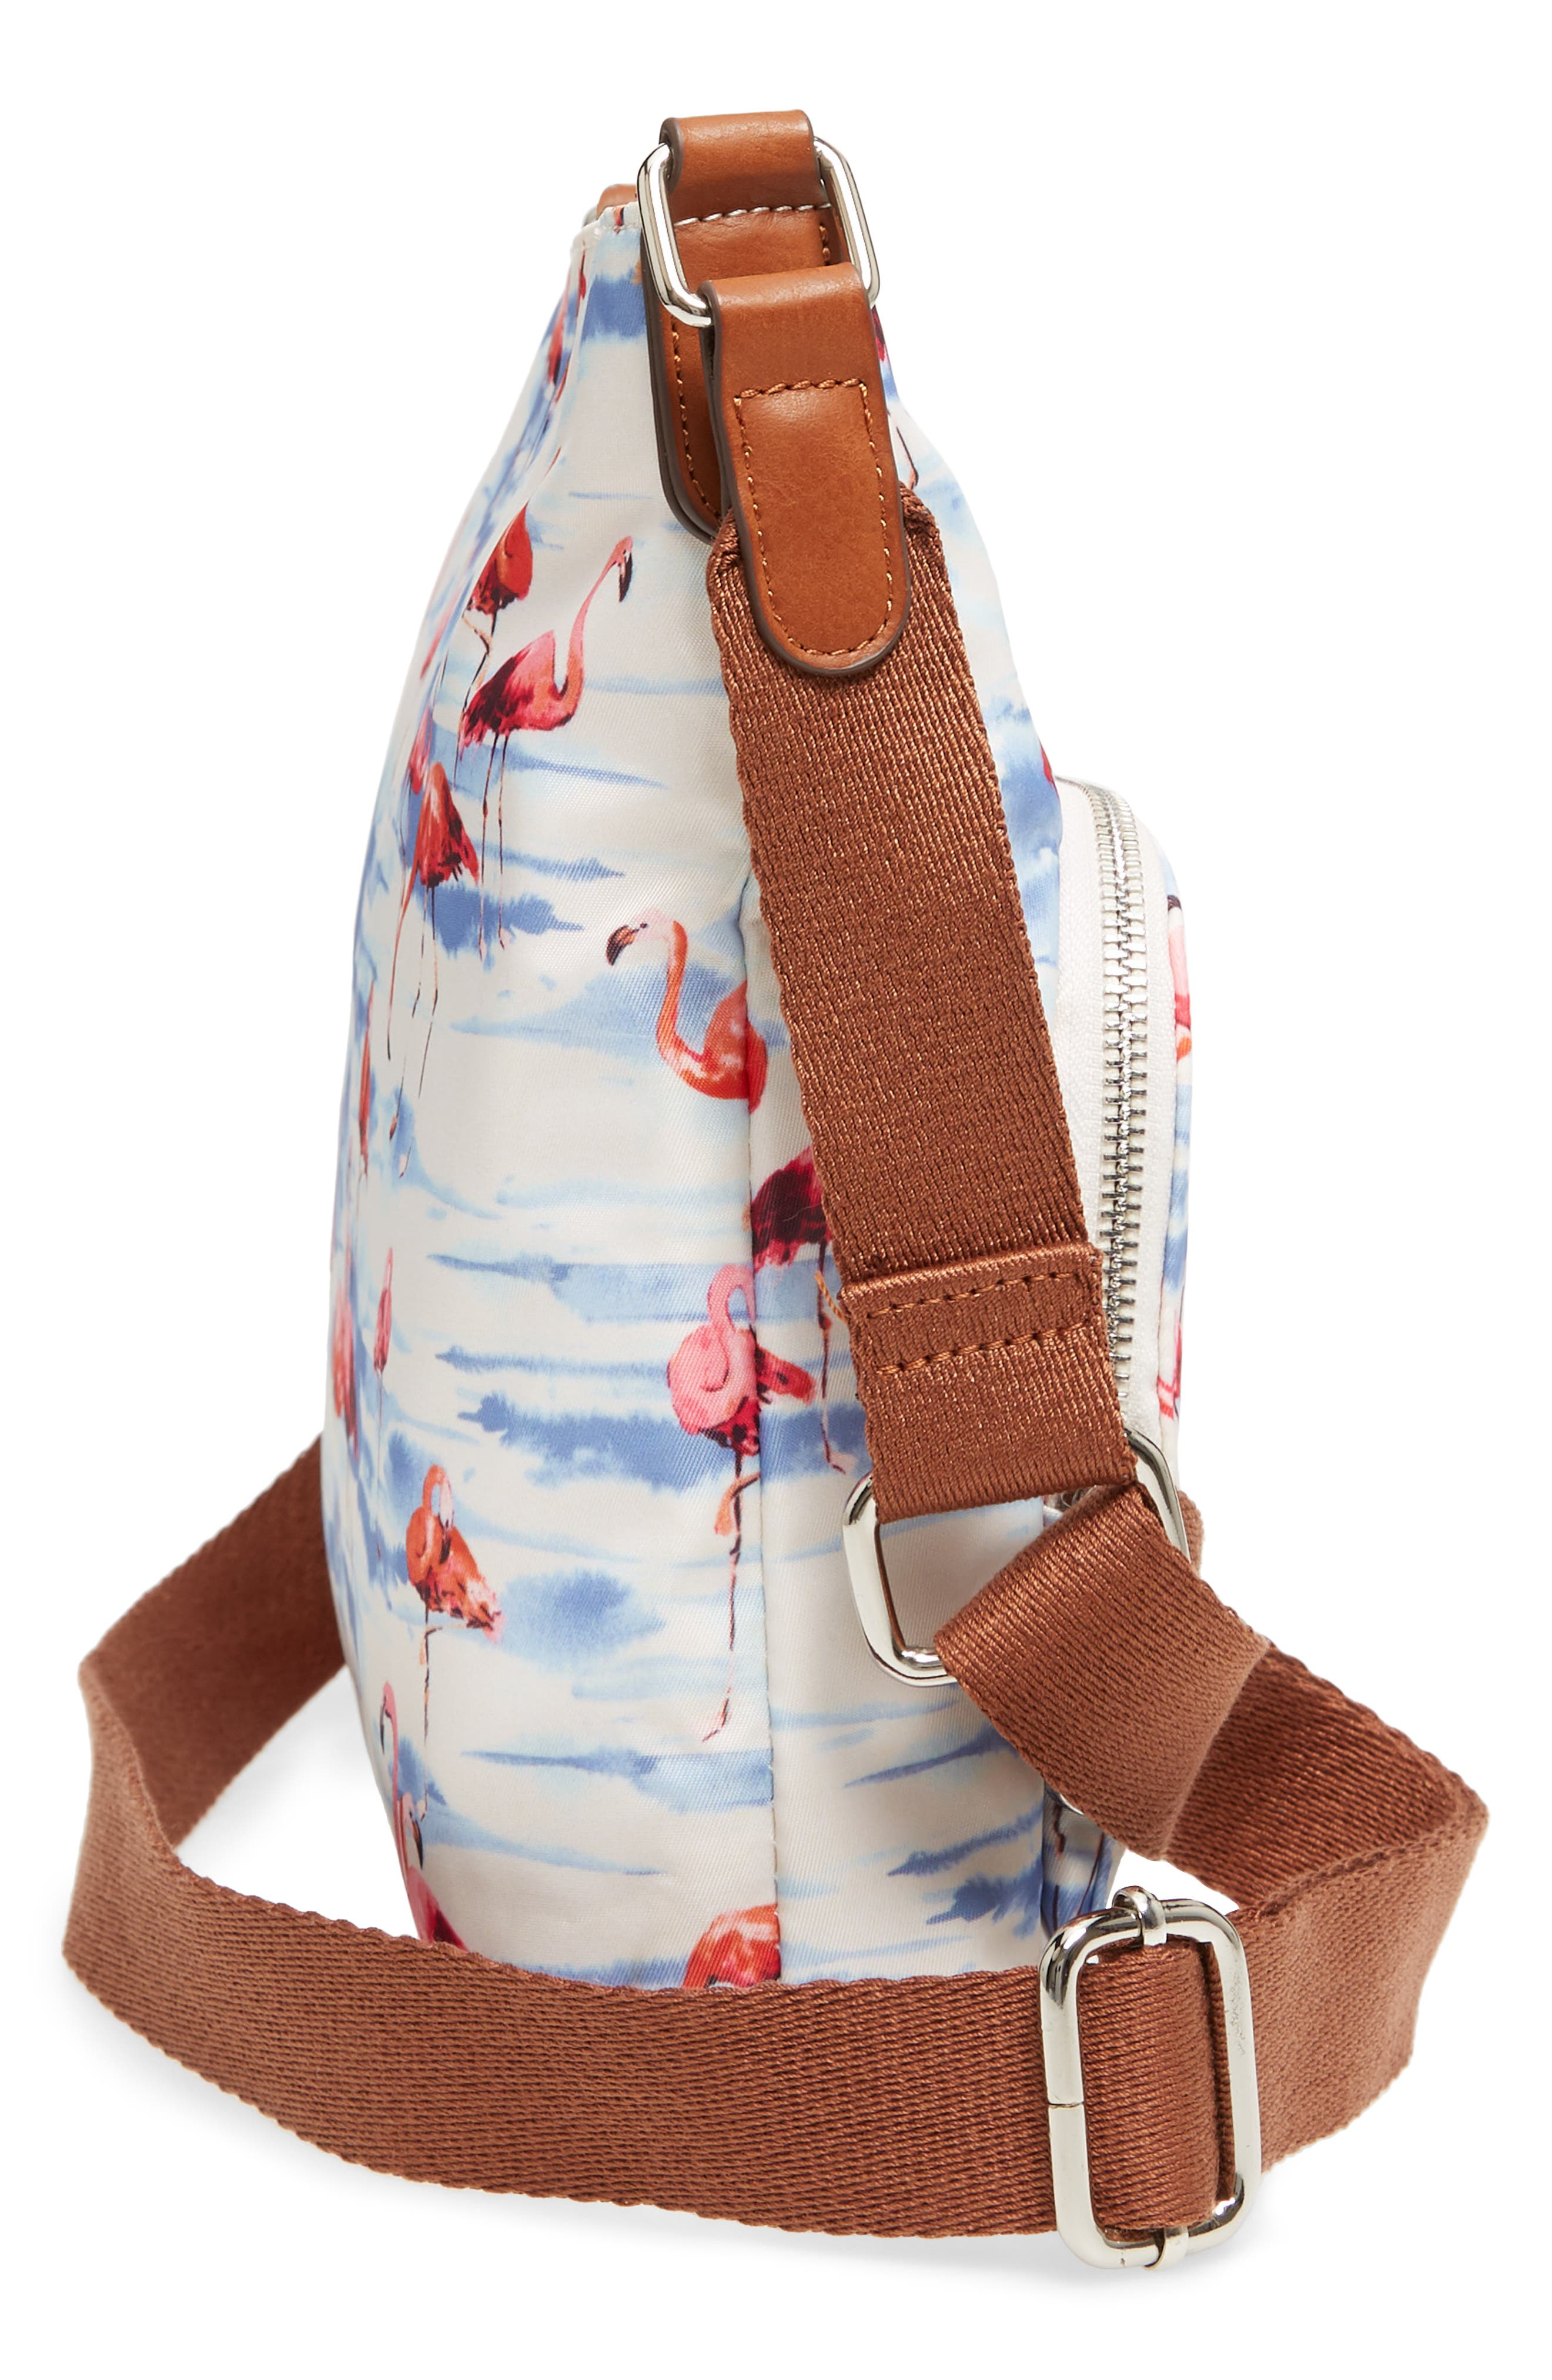 Siesta Key Waterproof Nylon Crossbody Bag,                             Alternate thumbnail 5, color,                             Flamingo Squad